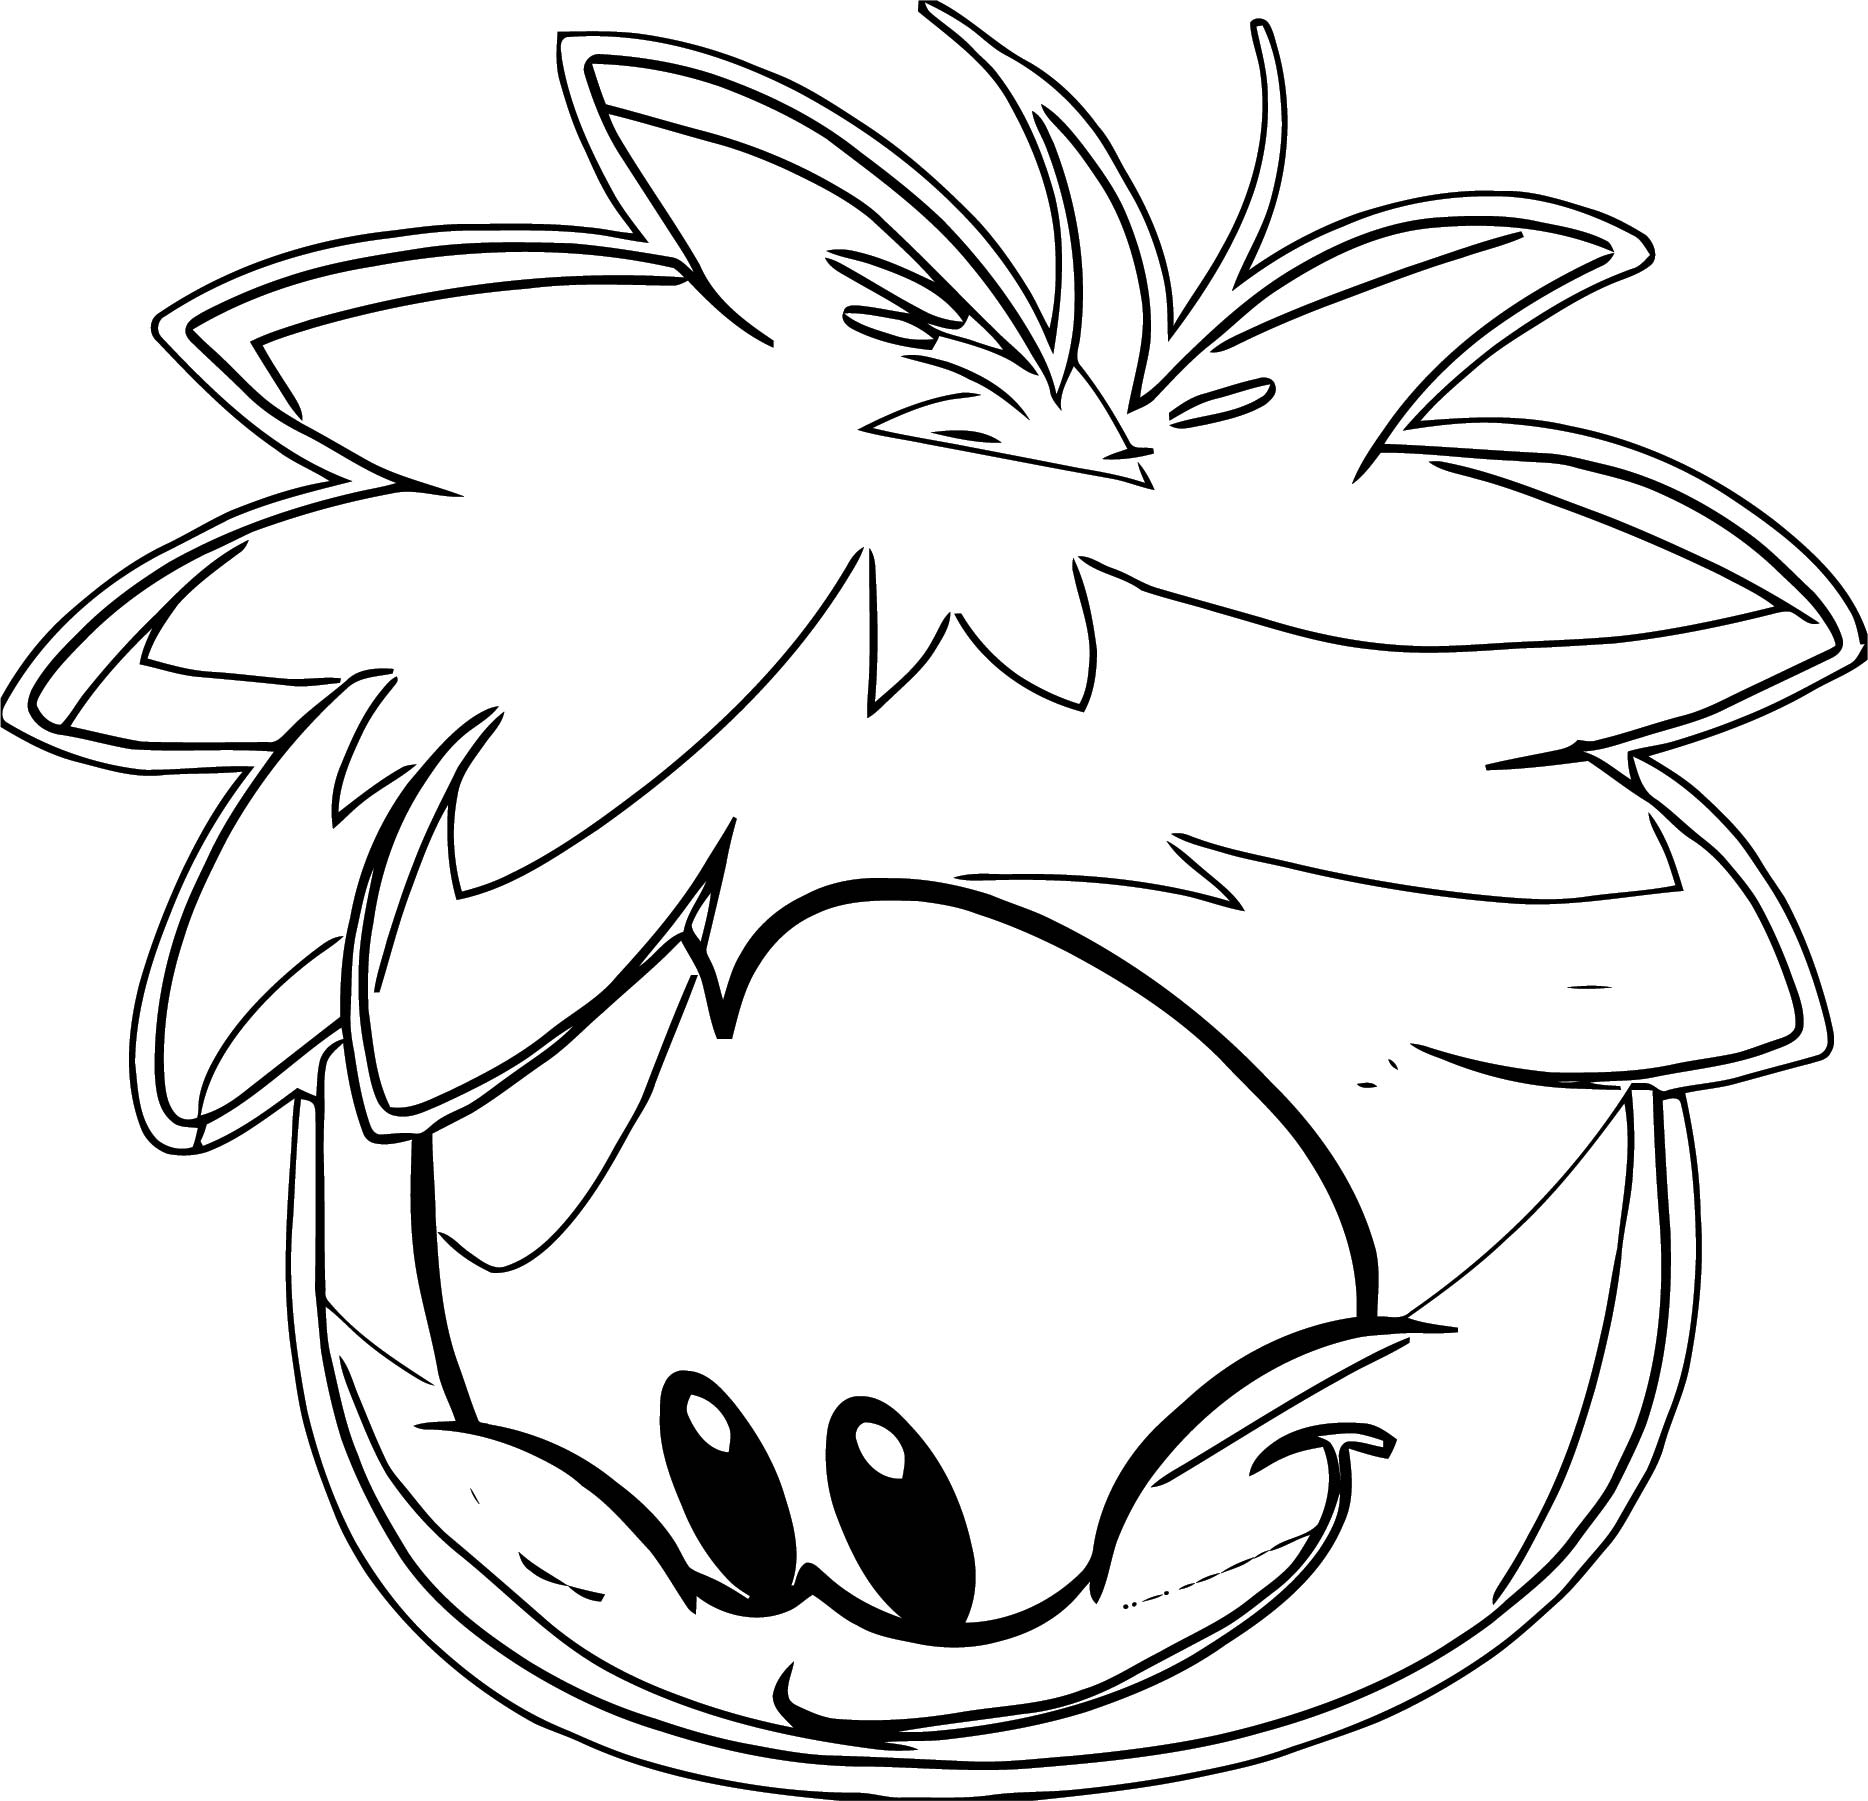 Rainbow Puffle 8 Coloring Page